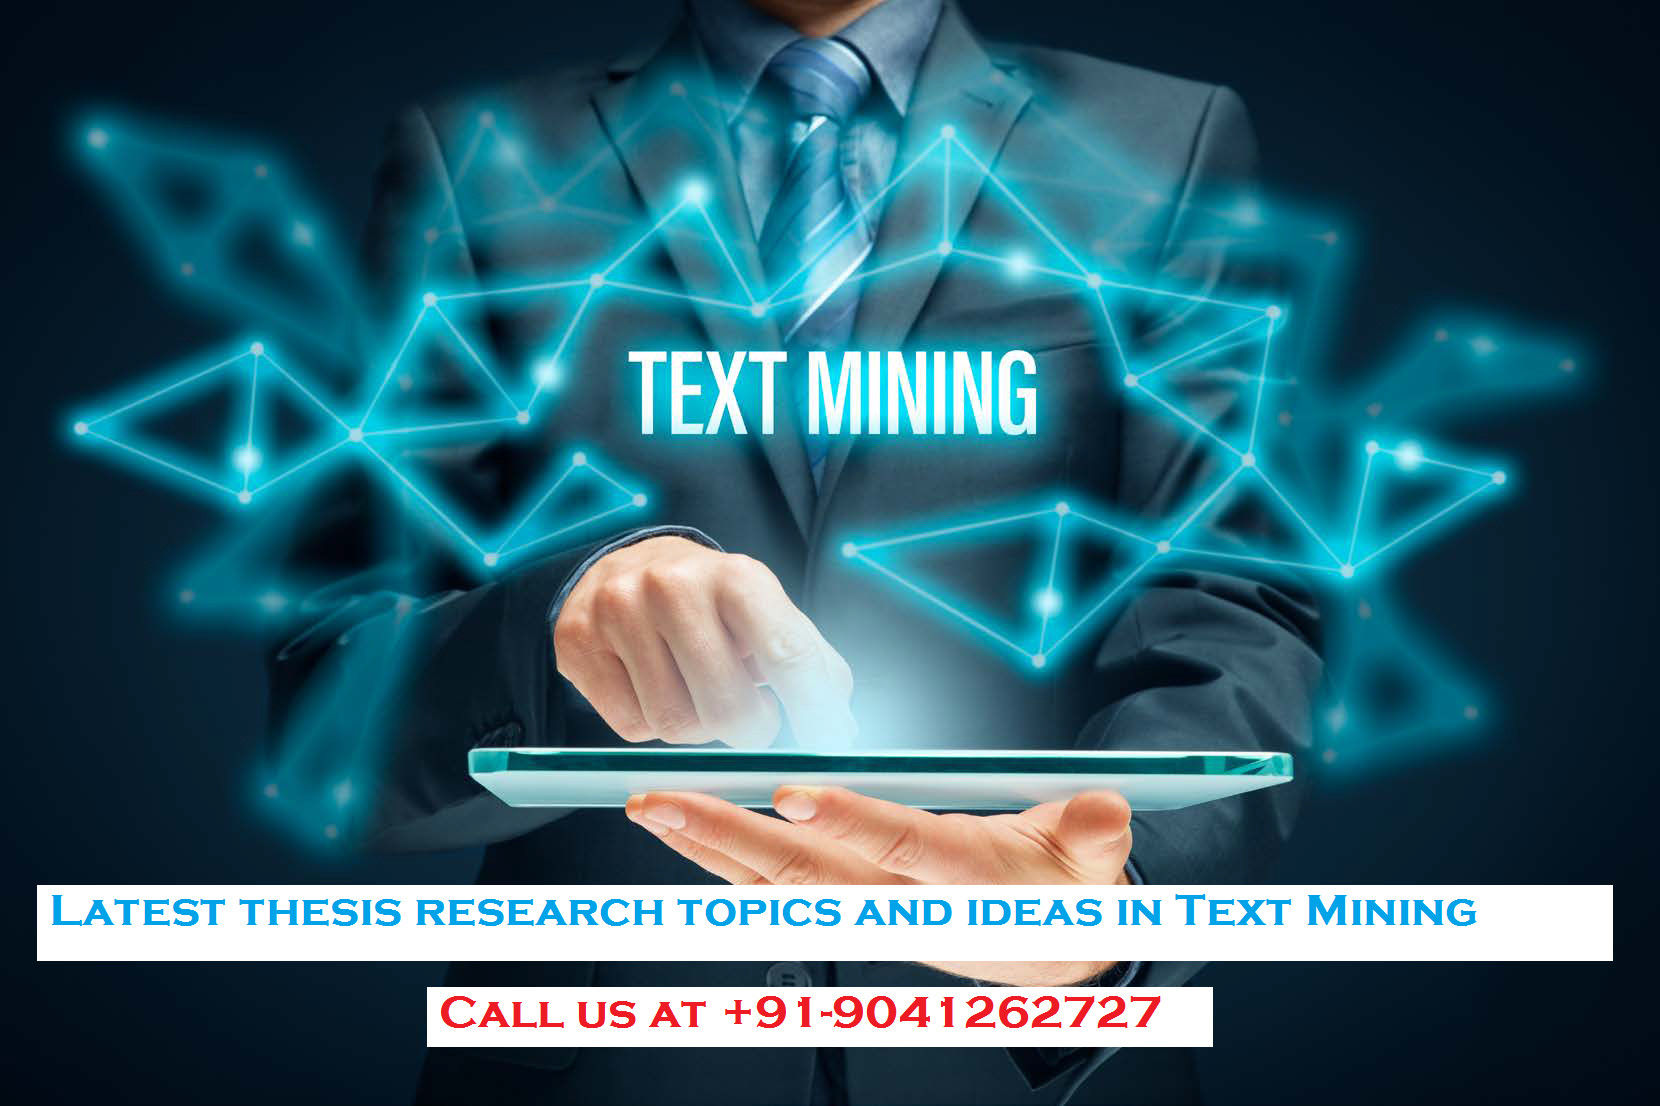 Latest thesis research topics and ideas in Text Mining